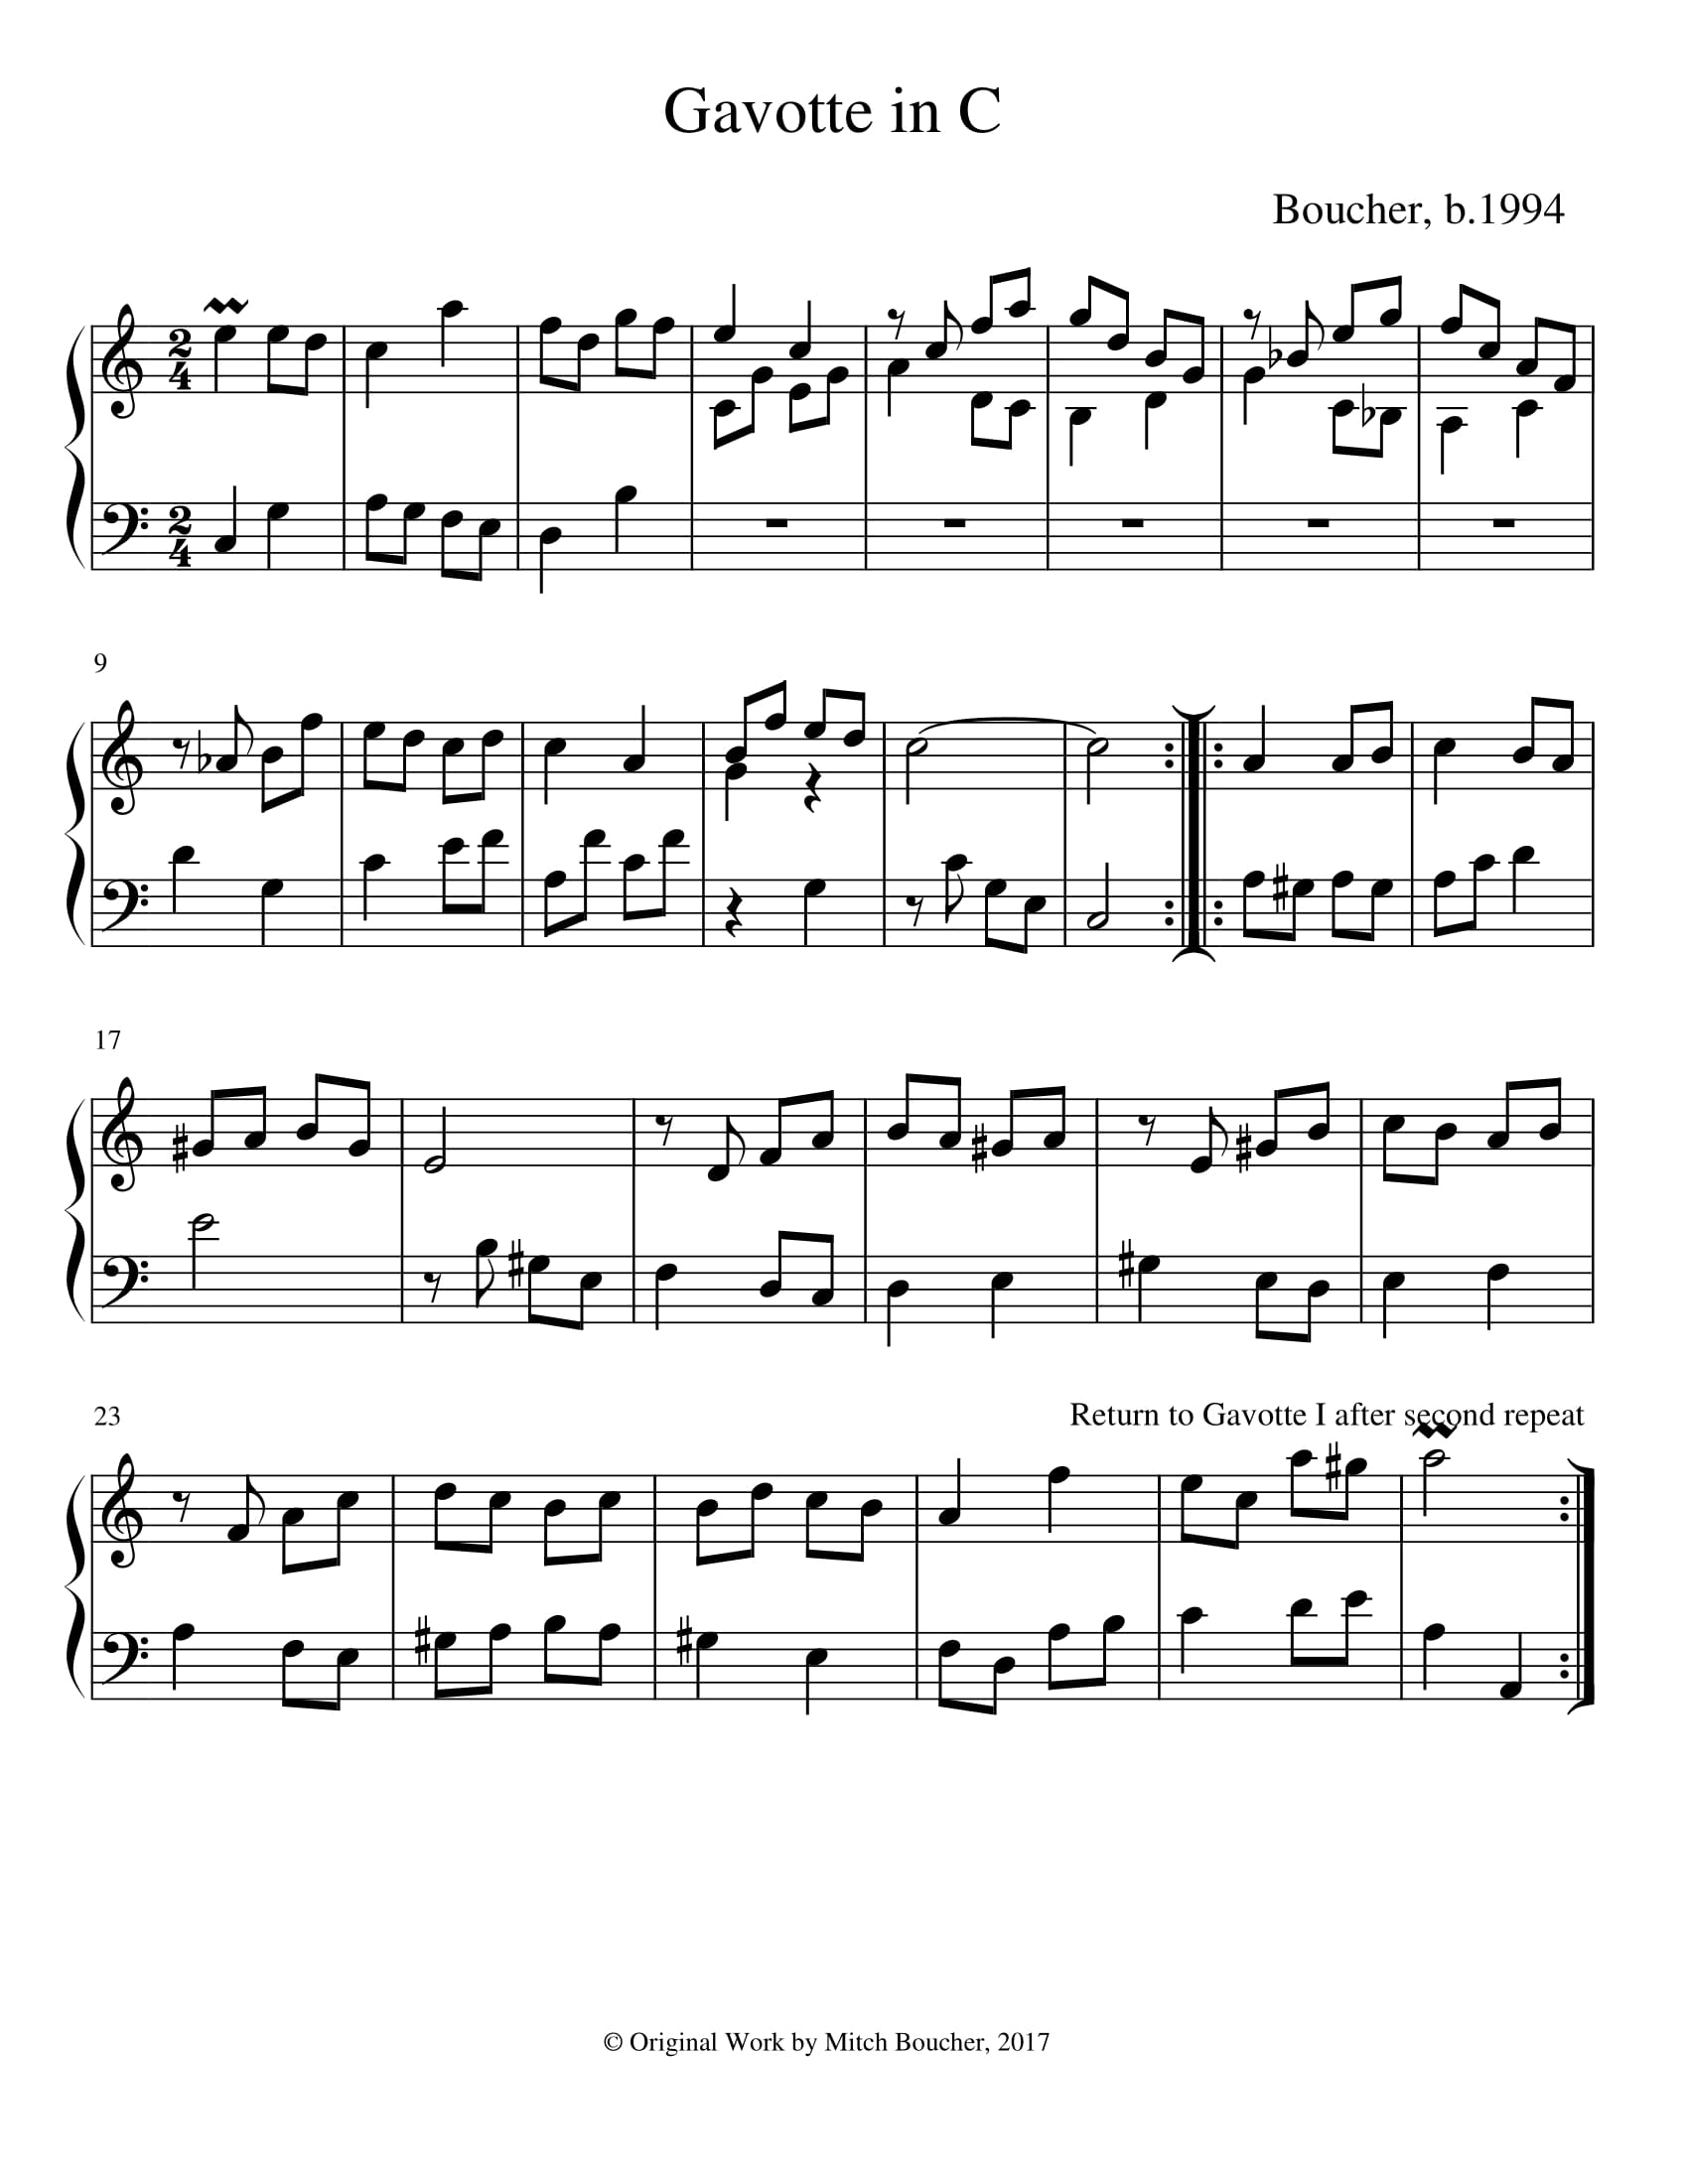 Gavotte from Suite in C